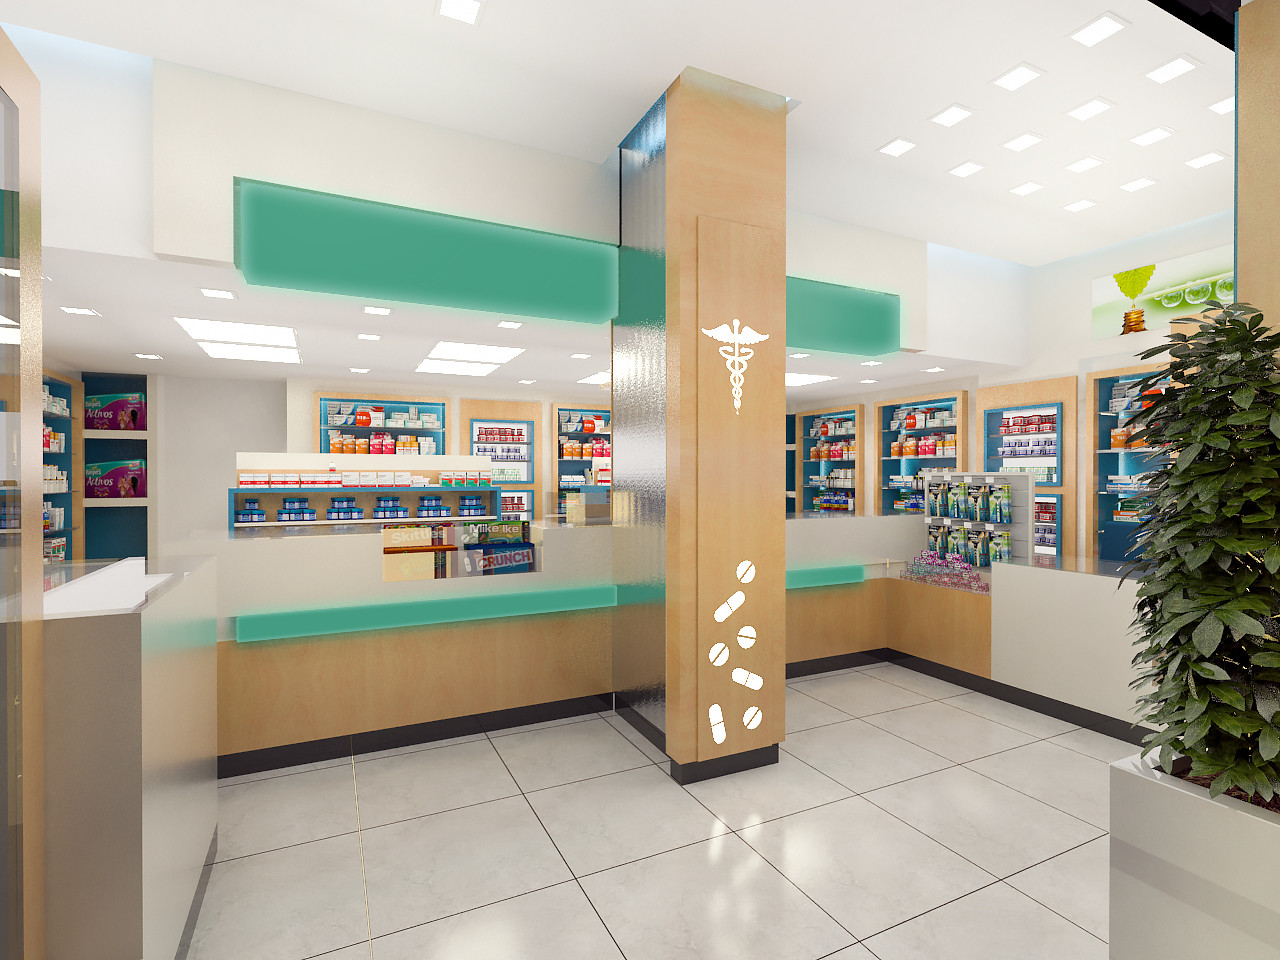 ArtStation - Pharmacy interior Design, Yasin Alastal